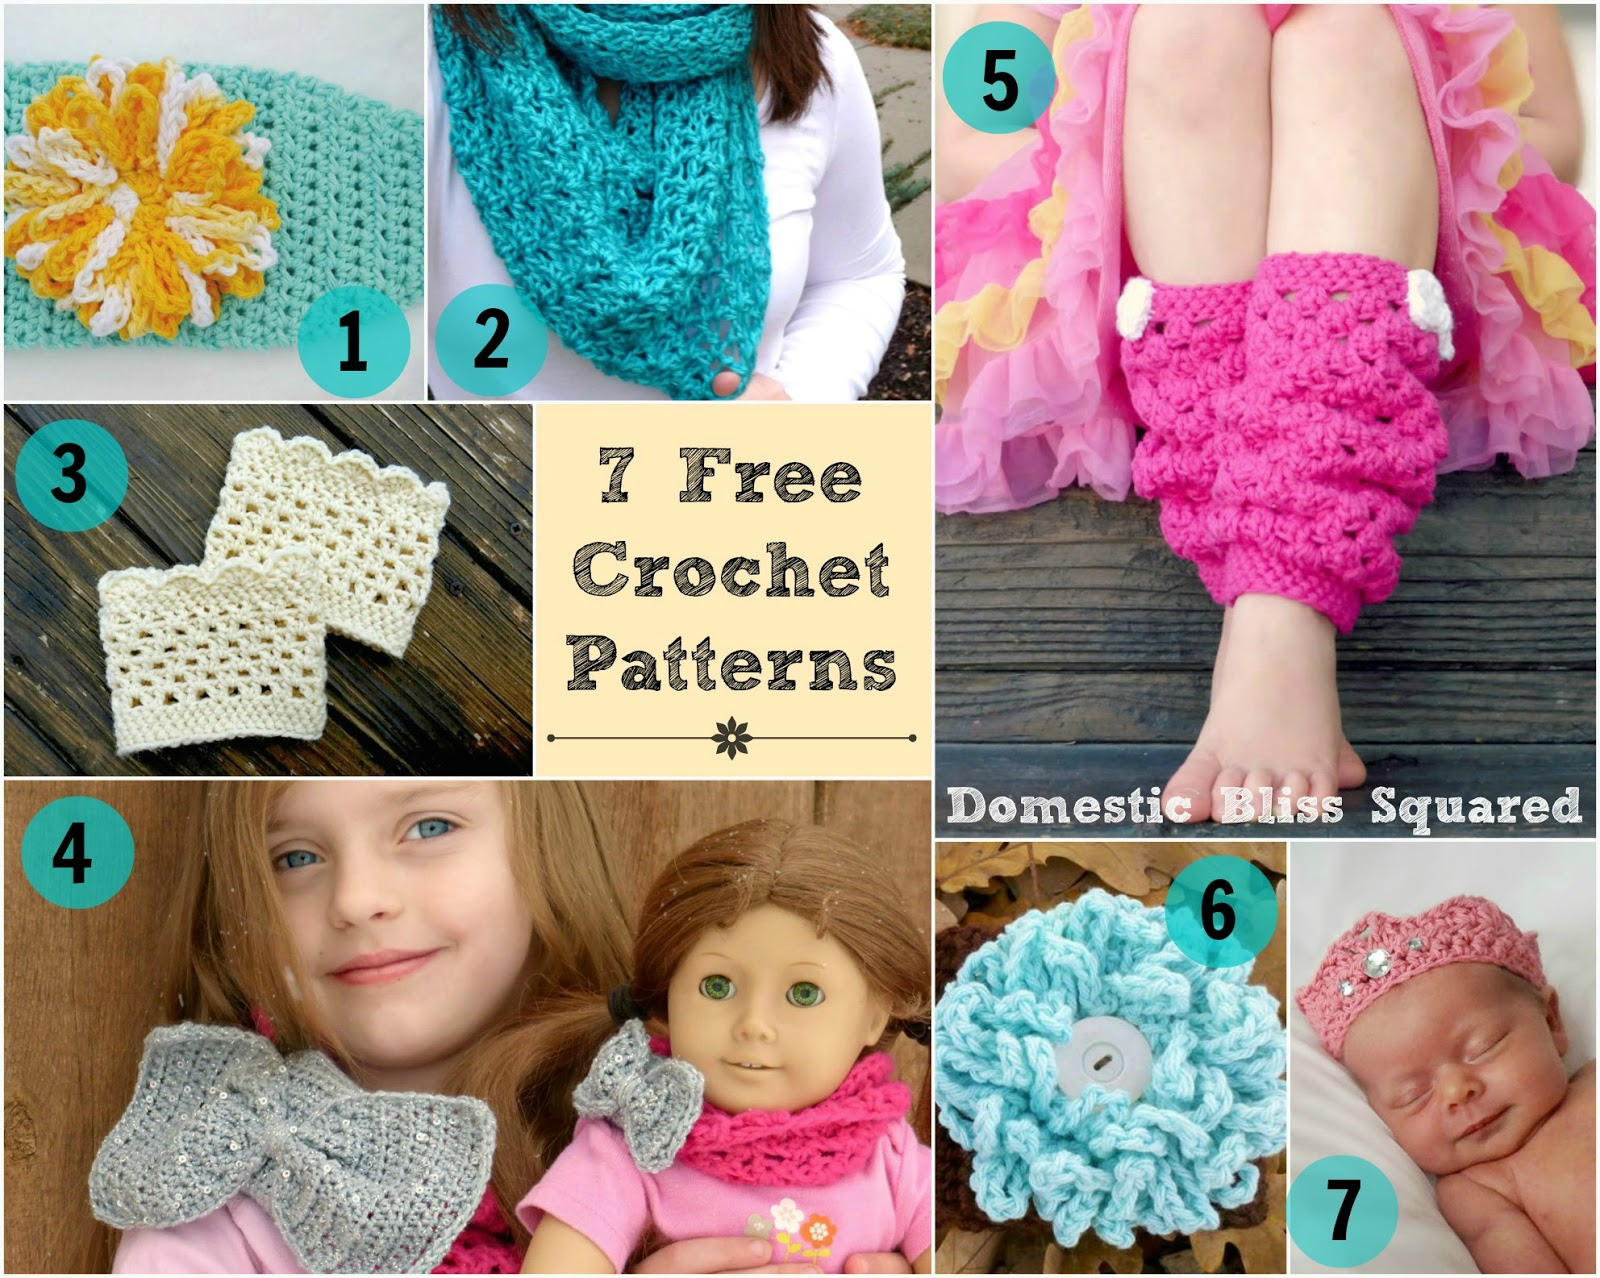 free crochet patterns: head wrap, scarf, boot cuffs, leg warmers, cowl scarf, loopy flower and newborn crown